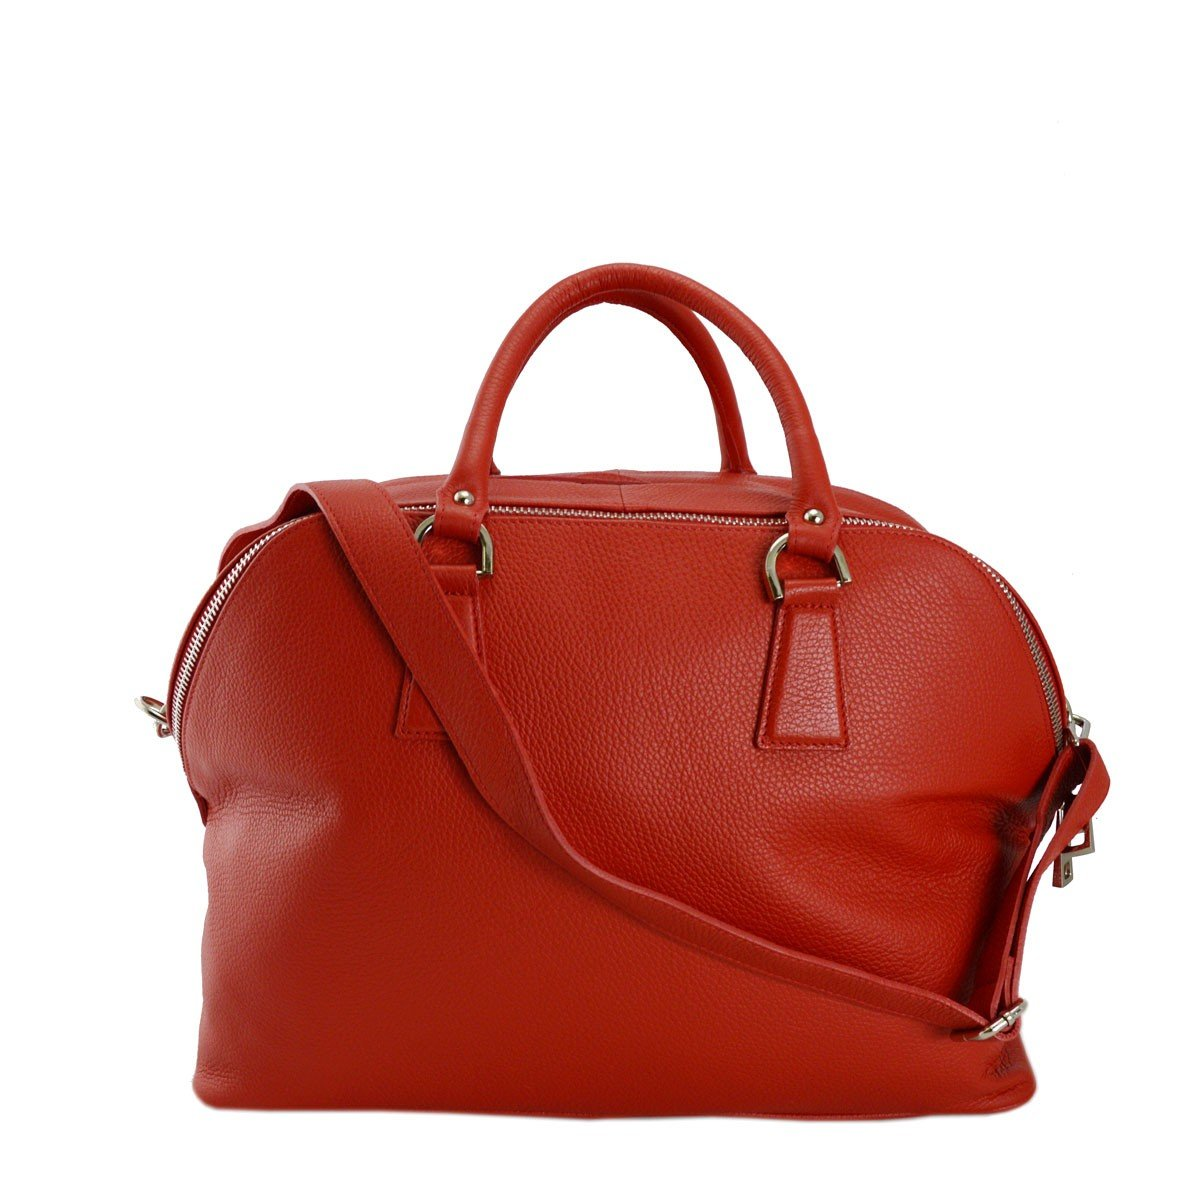 Dream Leather Bags Made in Italy Genuine Leather メンズ 554-4 US サイズ: 1 M US カラー: レッド B07C43LH76